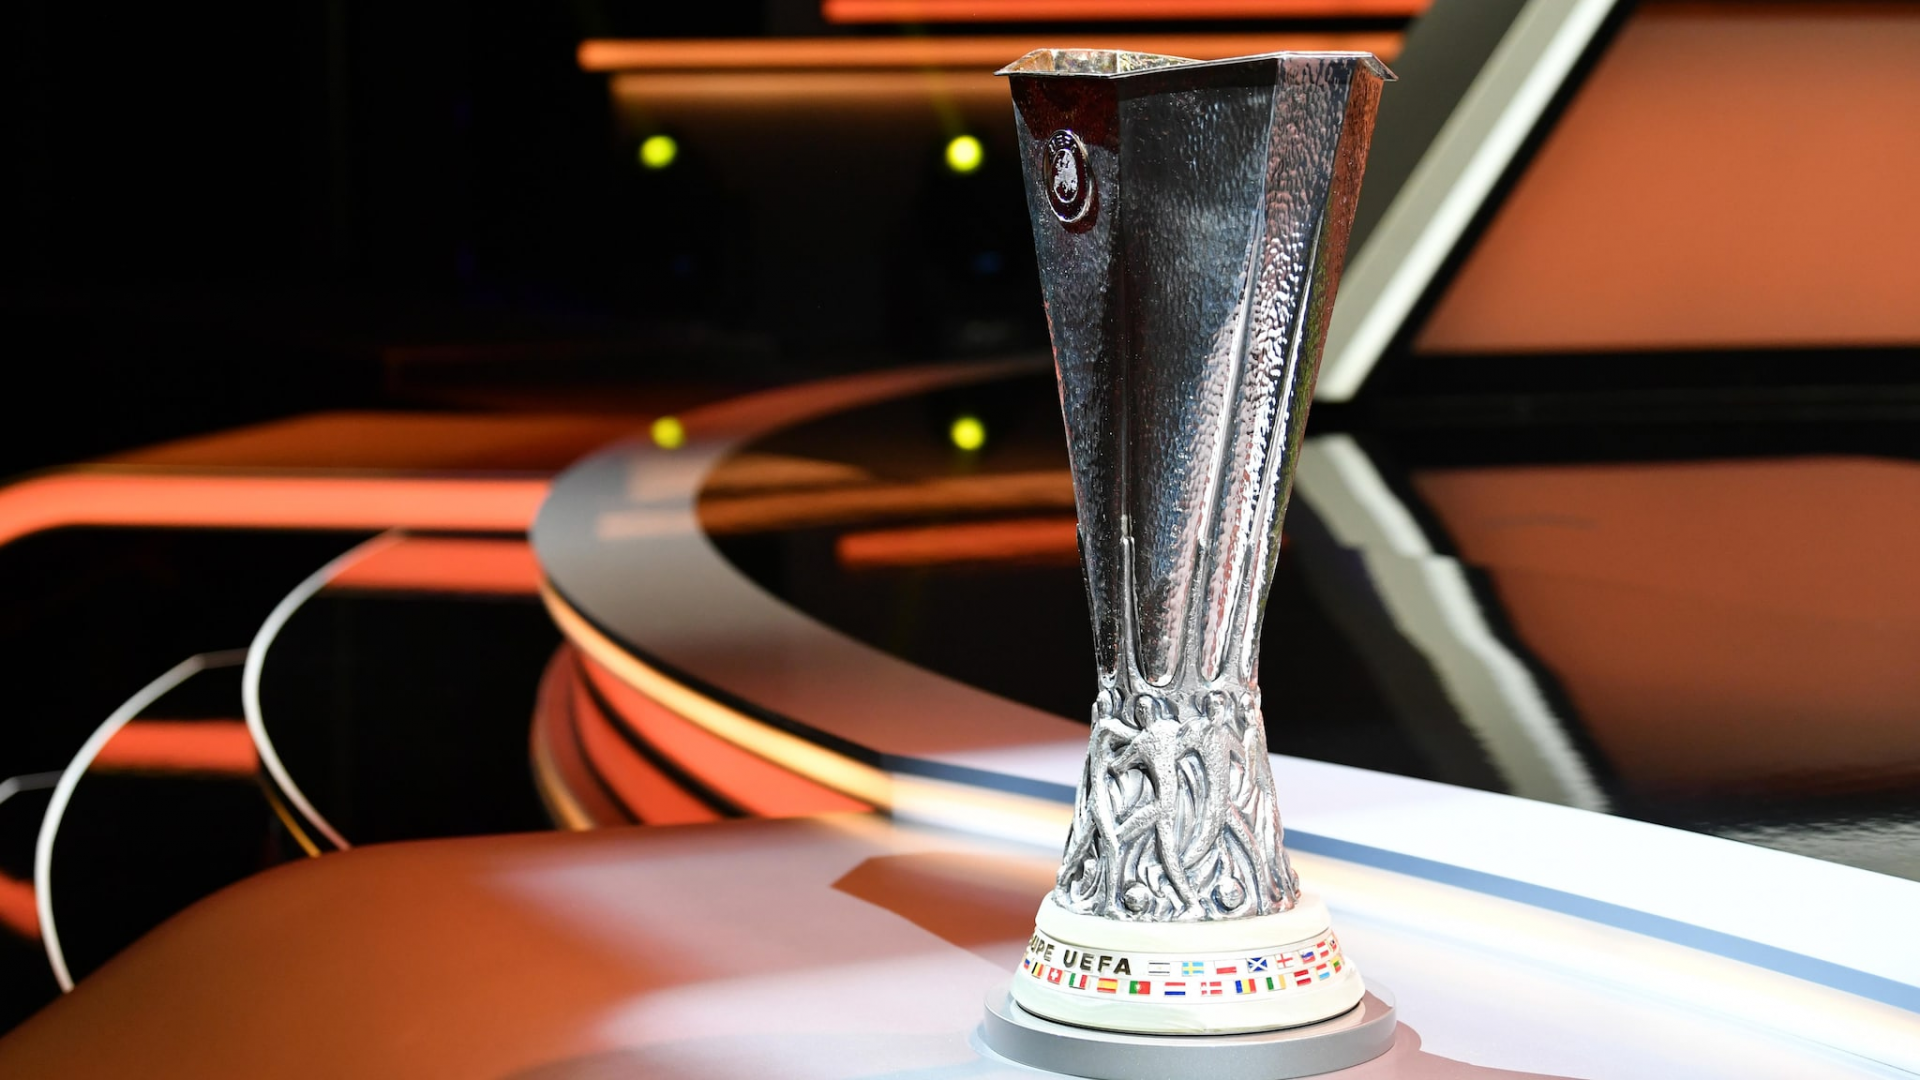 2020–21 UEFA Europa League: Get the latest news, video and statistics for matches